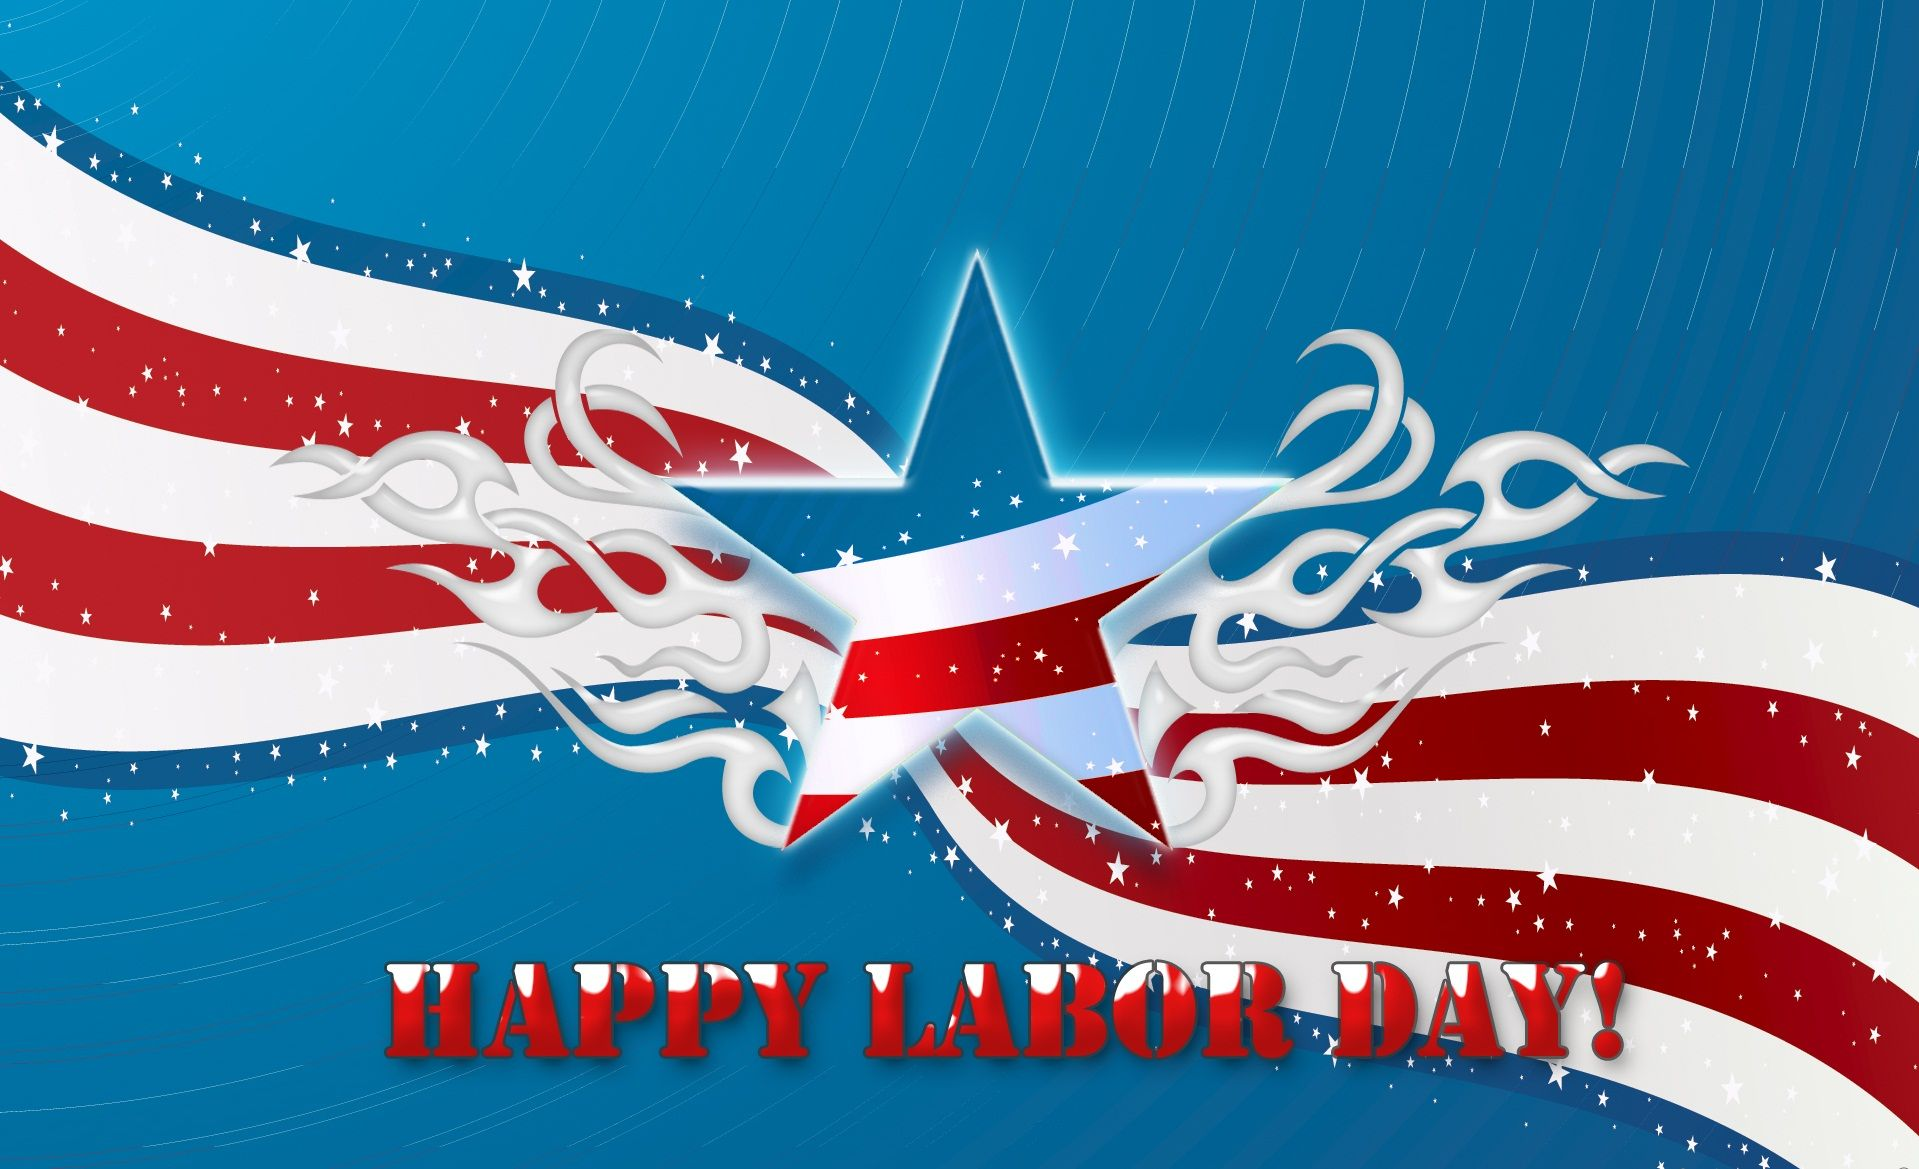 Happy Labor Day Quotes, Messages For Labor Day 2017